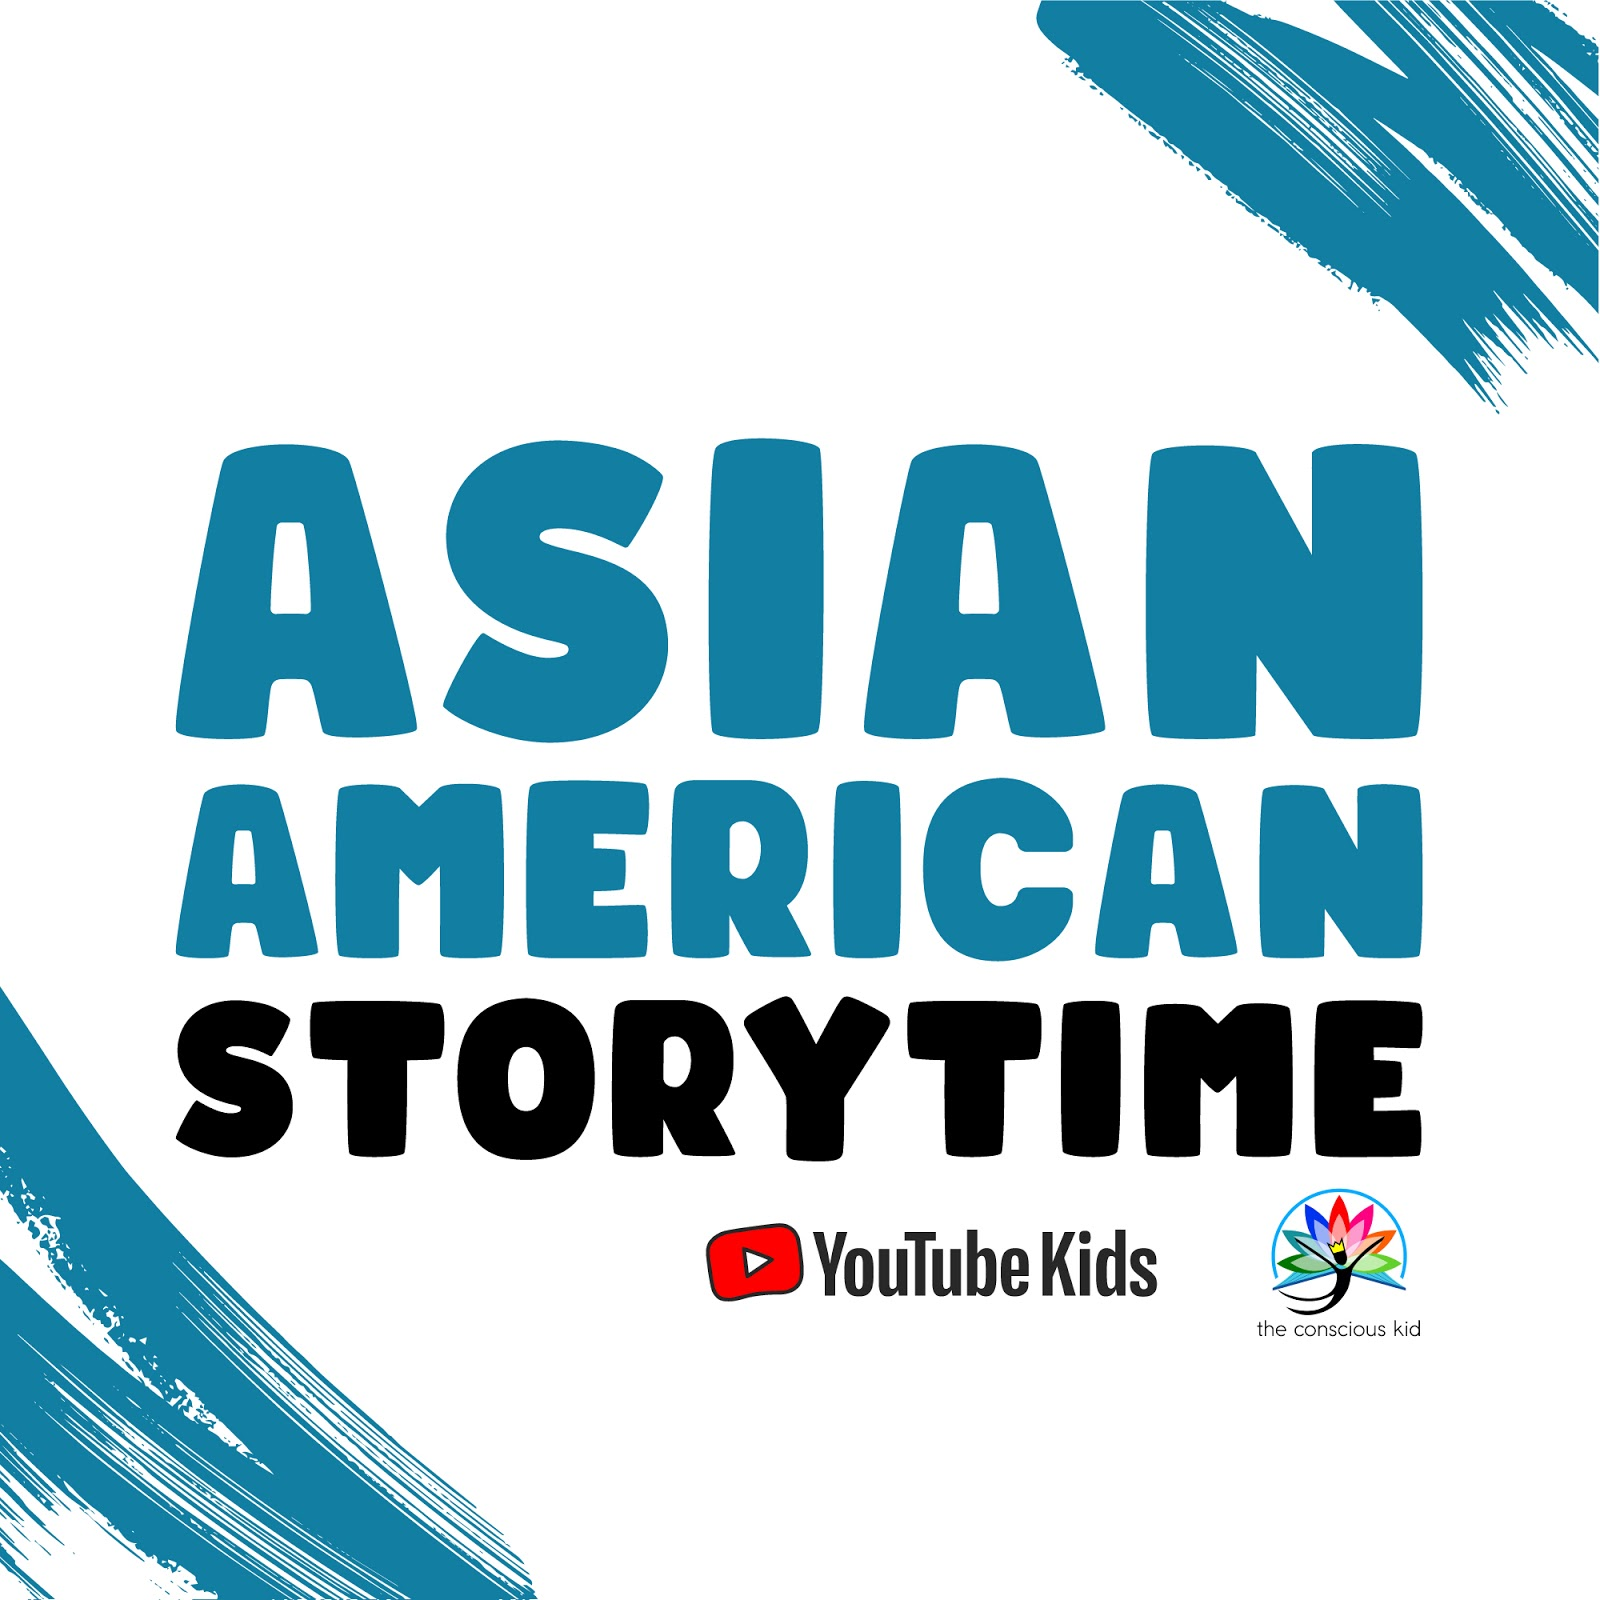 Asian American storytime